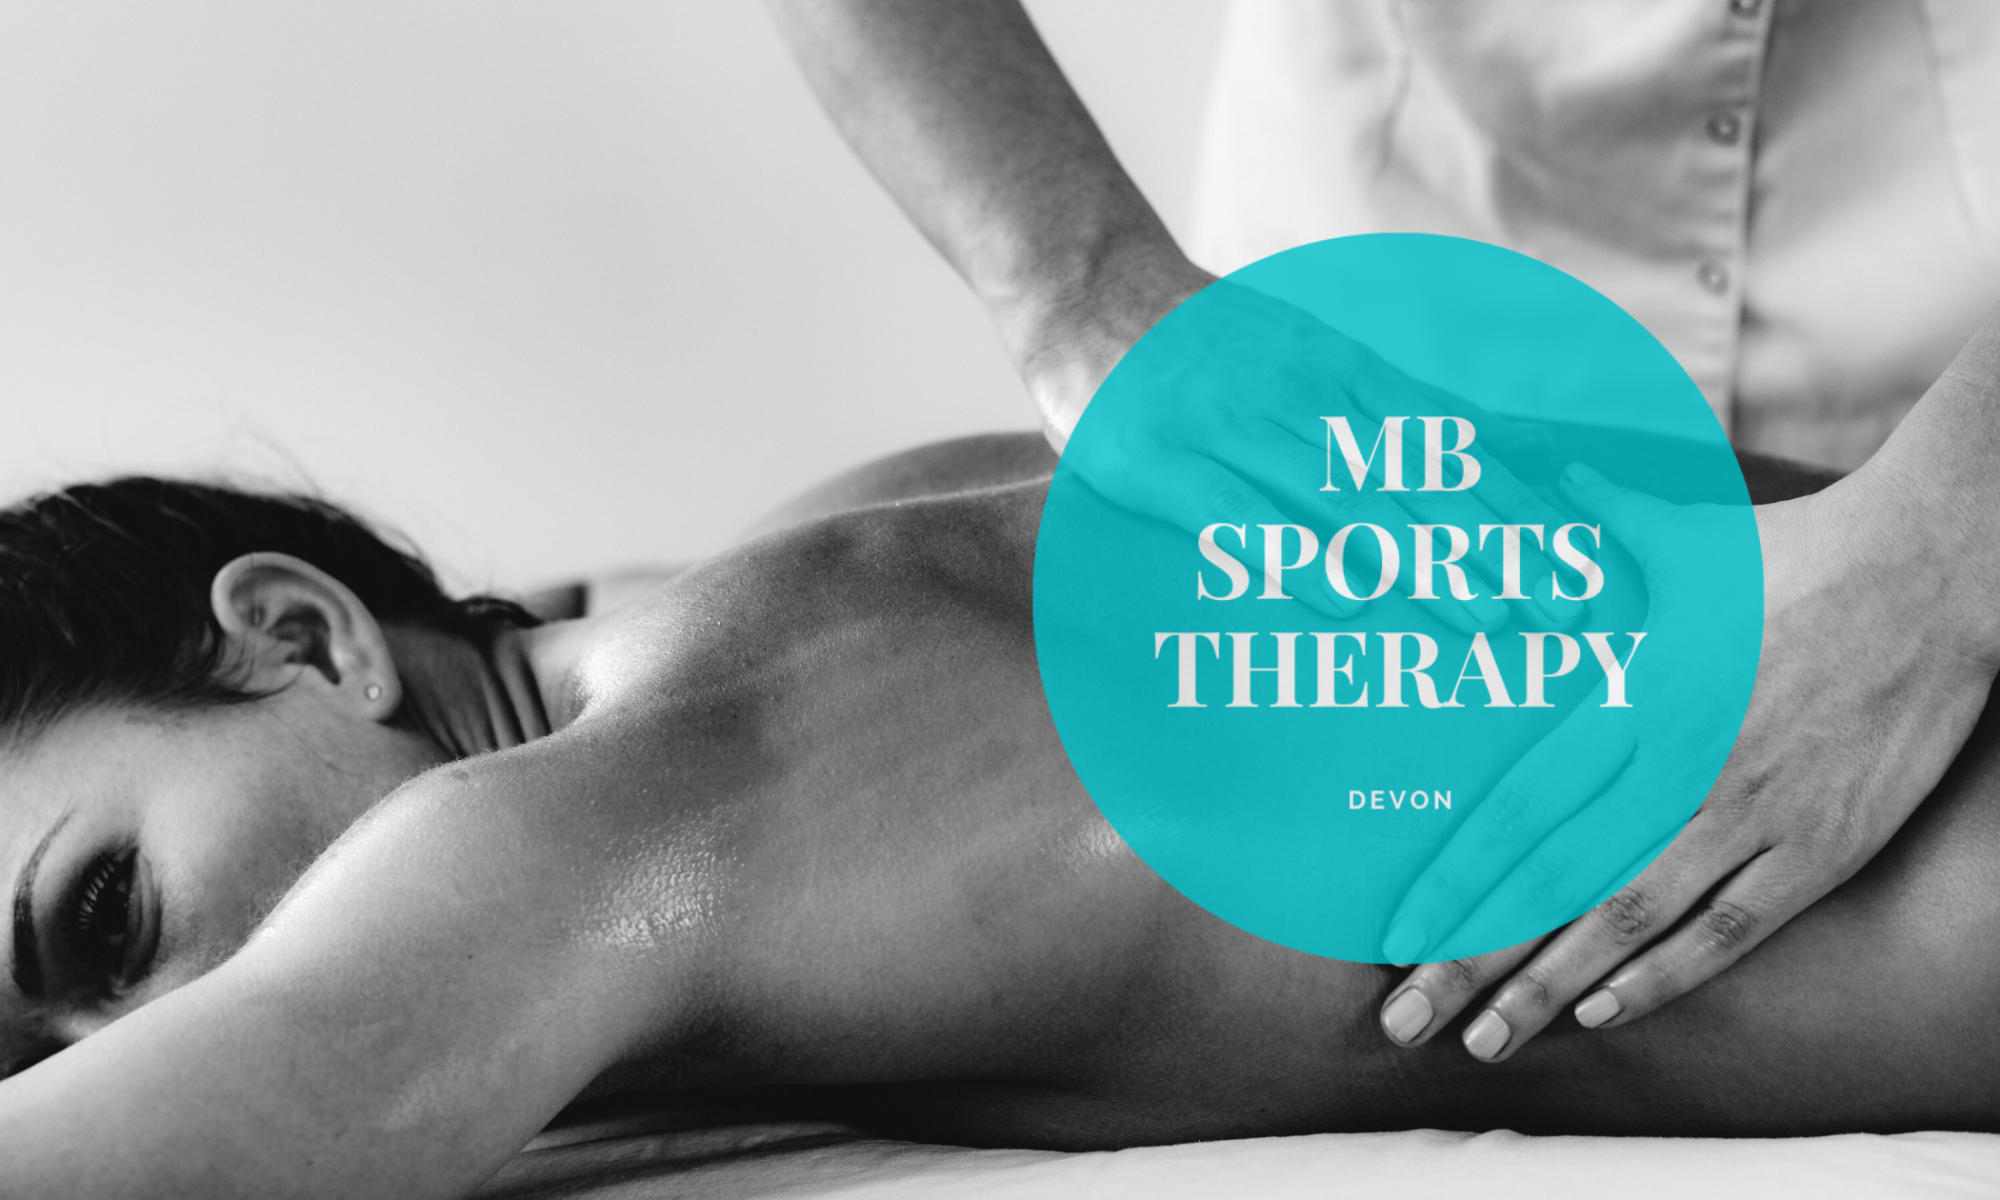 MB Sports Therapy